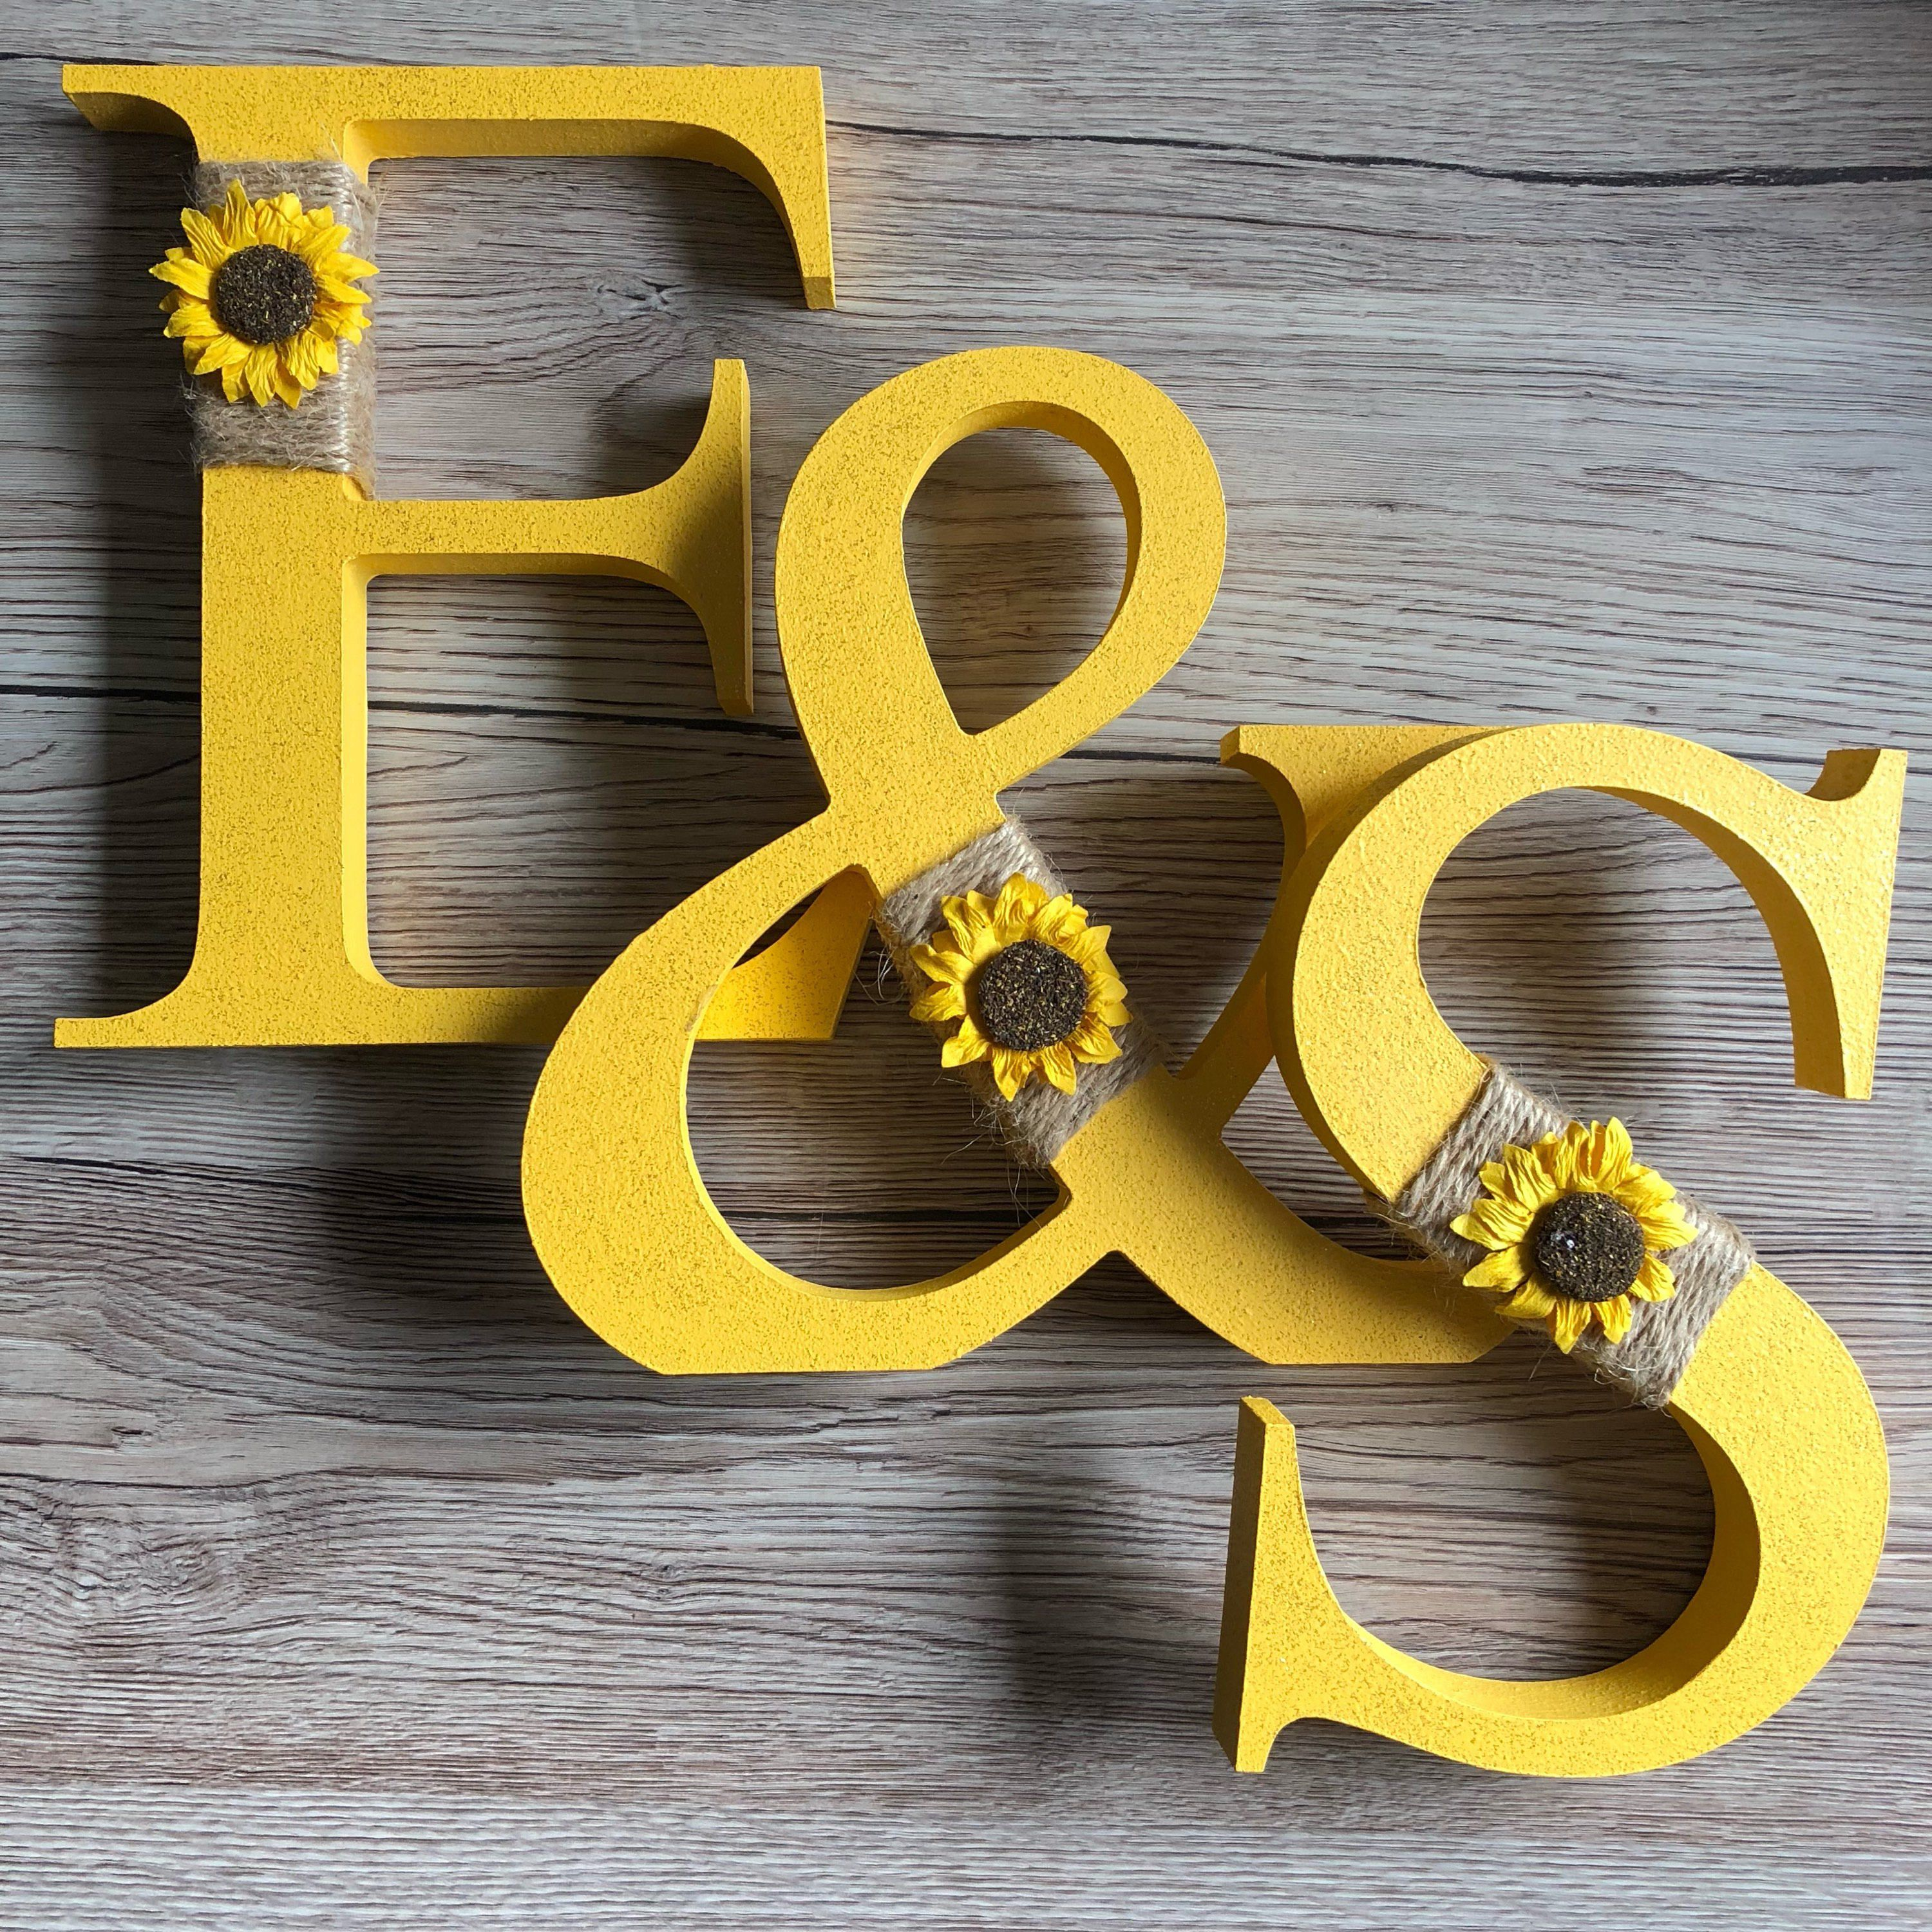 Decorated Sunflower Themed Freestanding Wooden Letter Painting Wooden Letters Freestanding